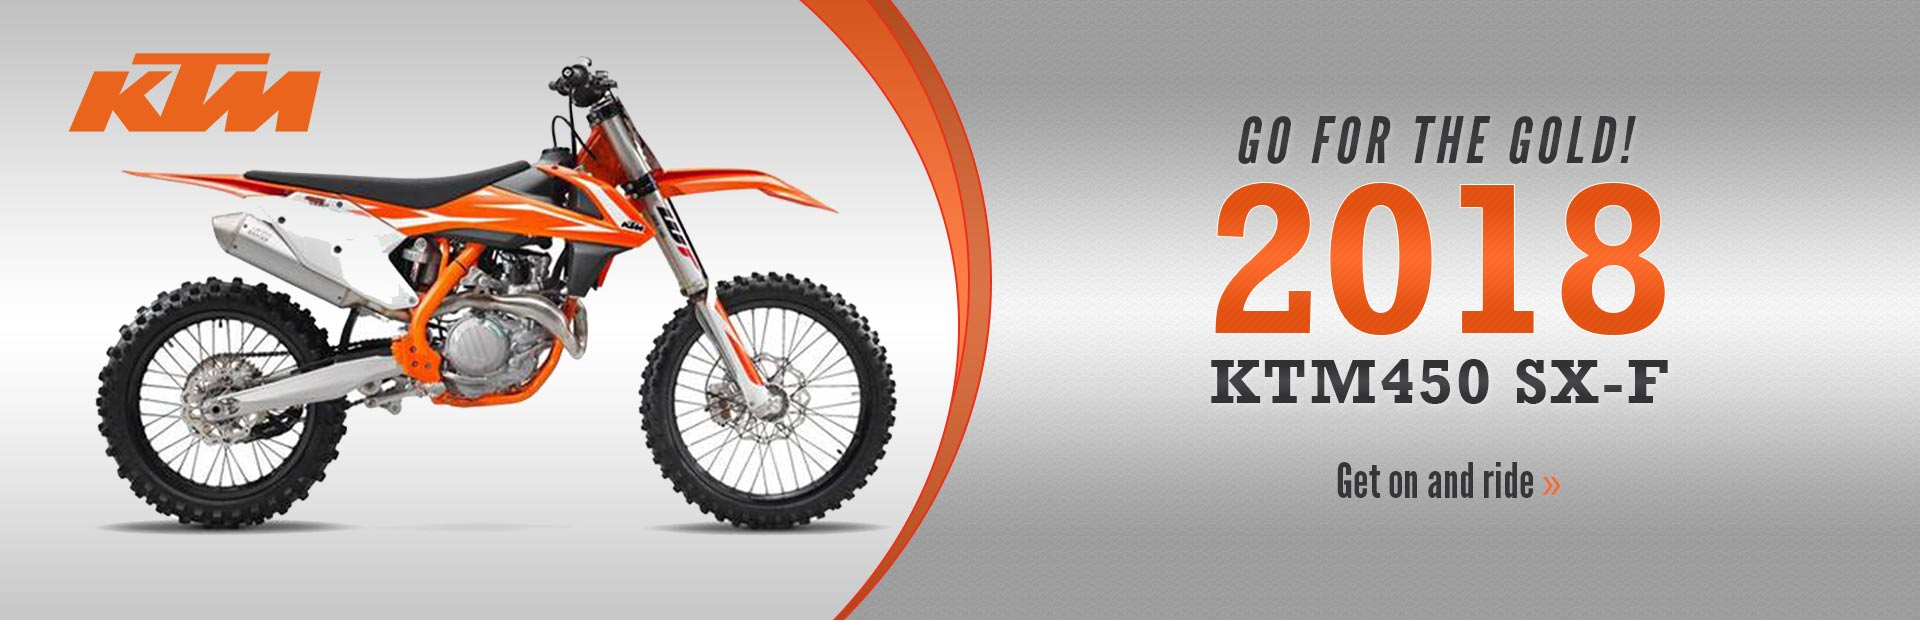 Go for the gold with the 2018 KTM 450 SX-F! Click here for details.